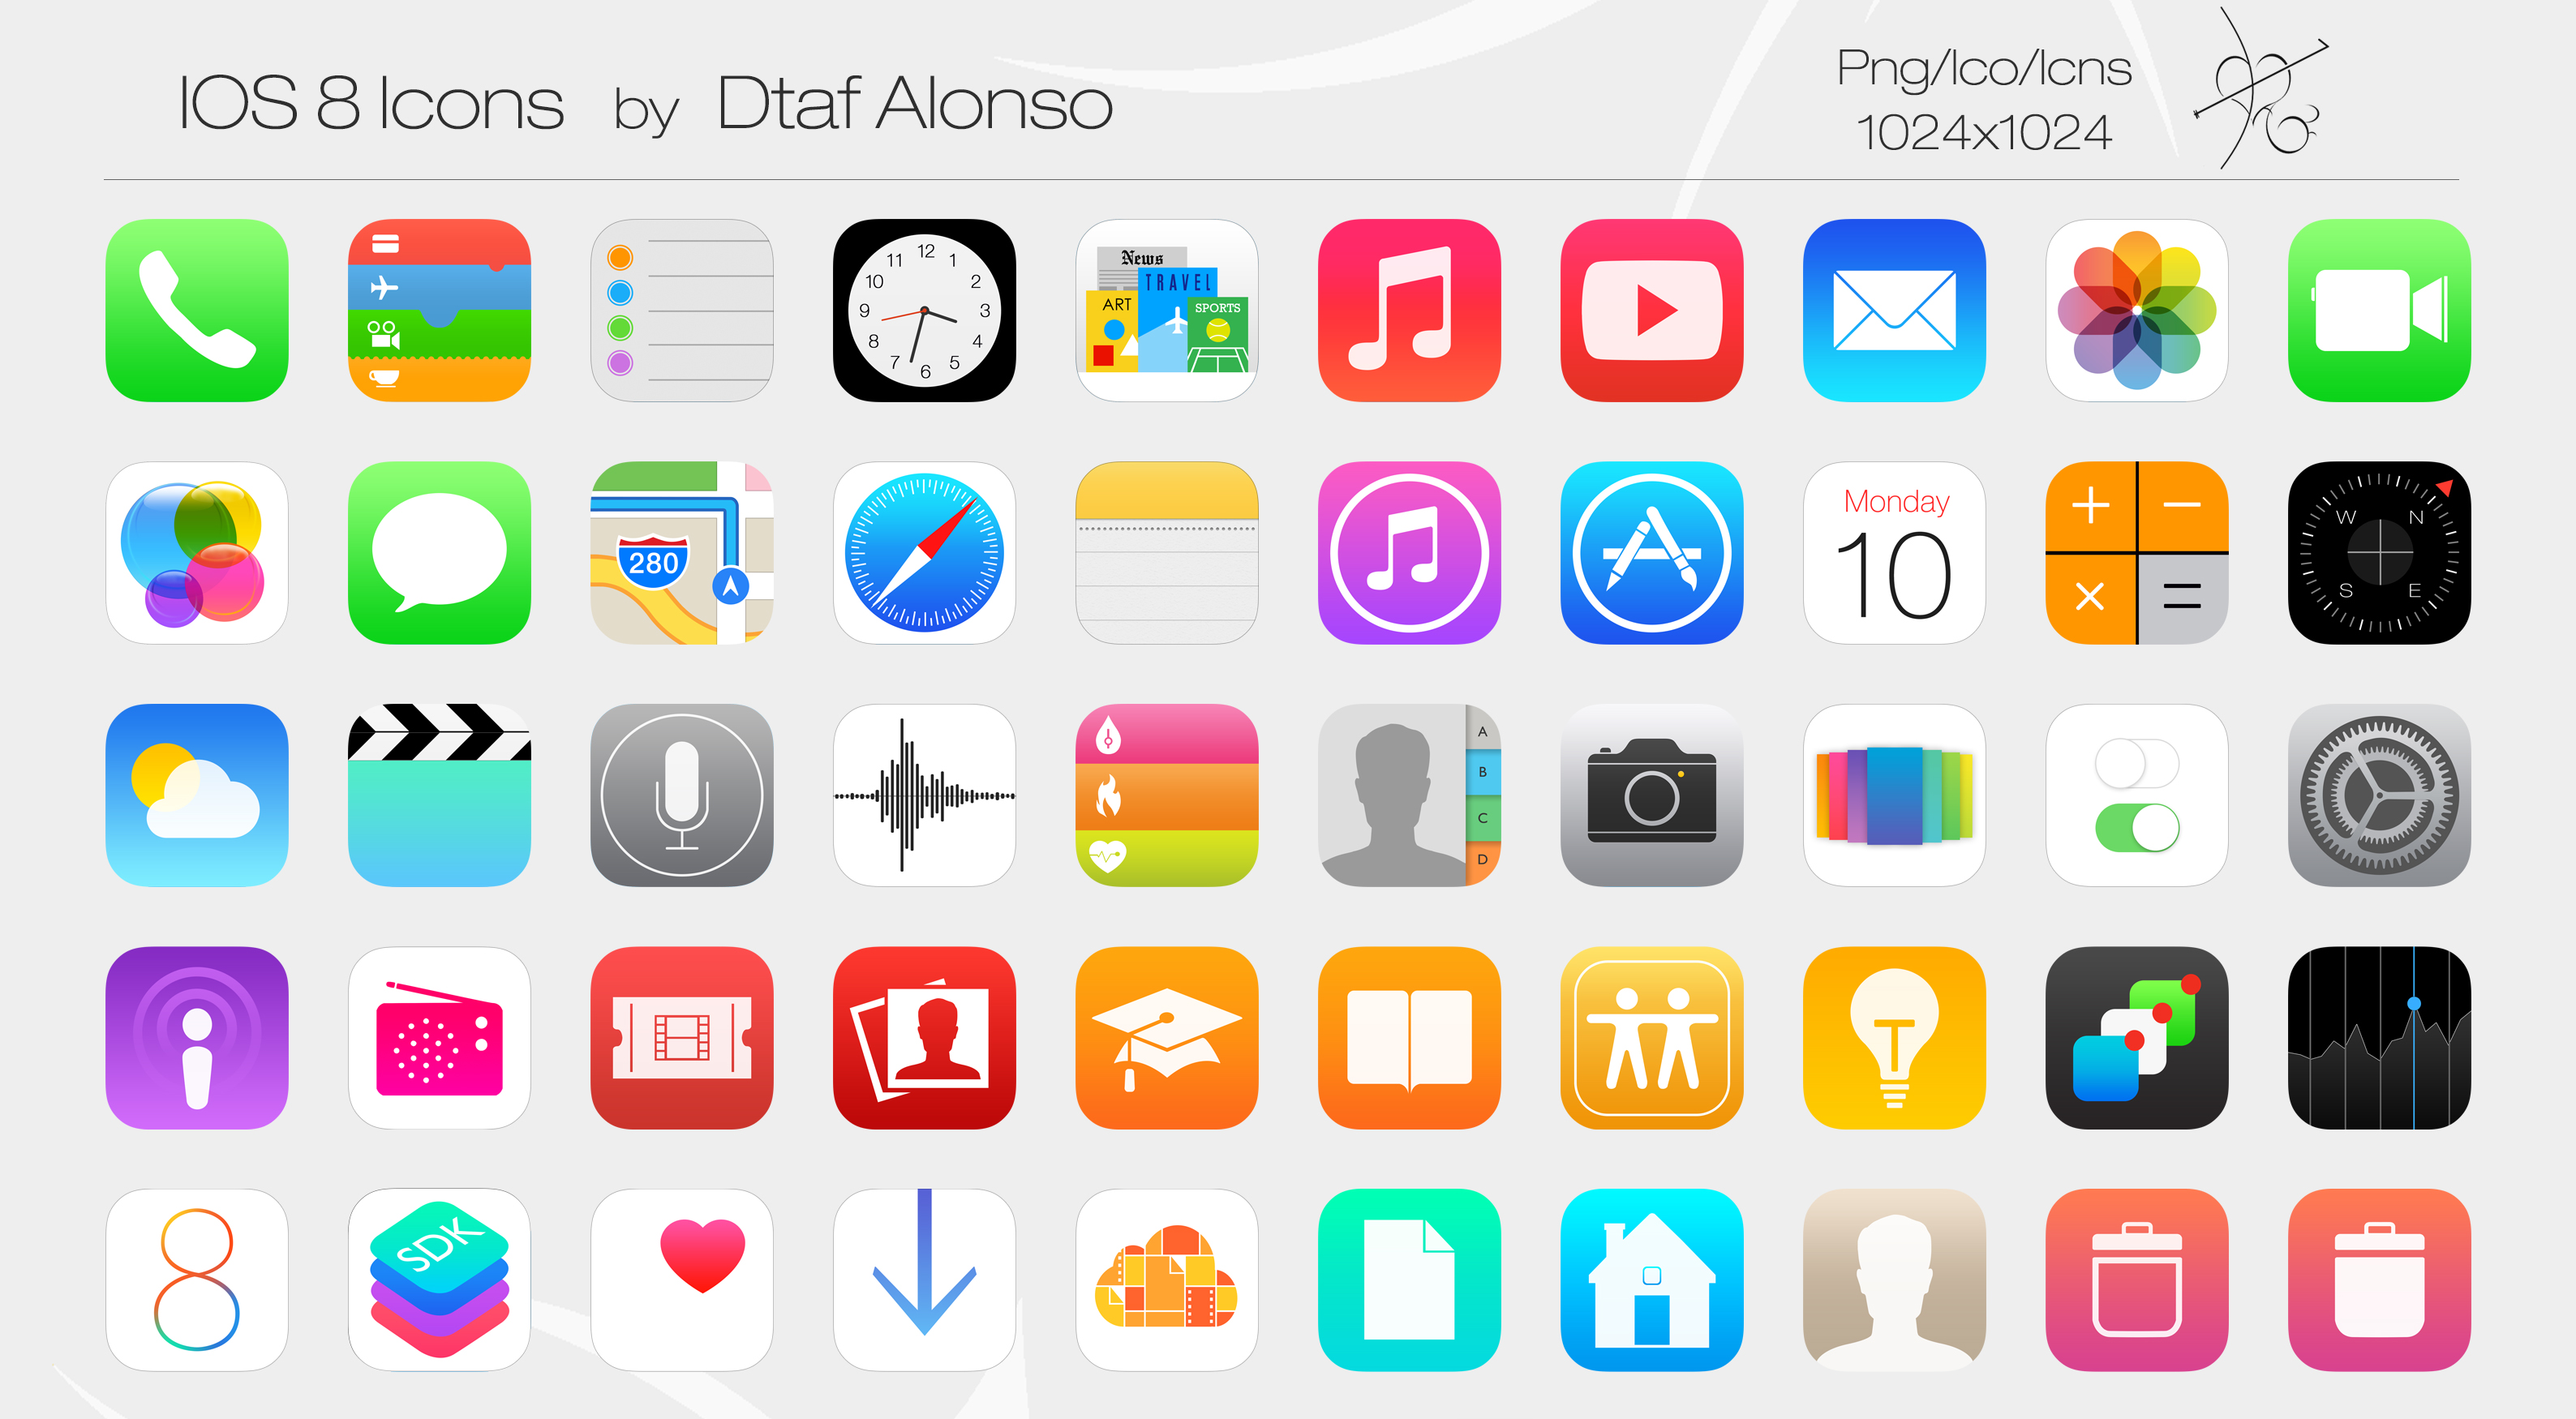 13 2015 iphone icons images apple iphone app icons for Iphone picture apps free